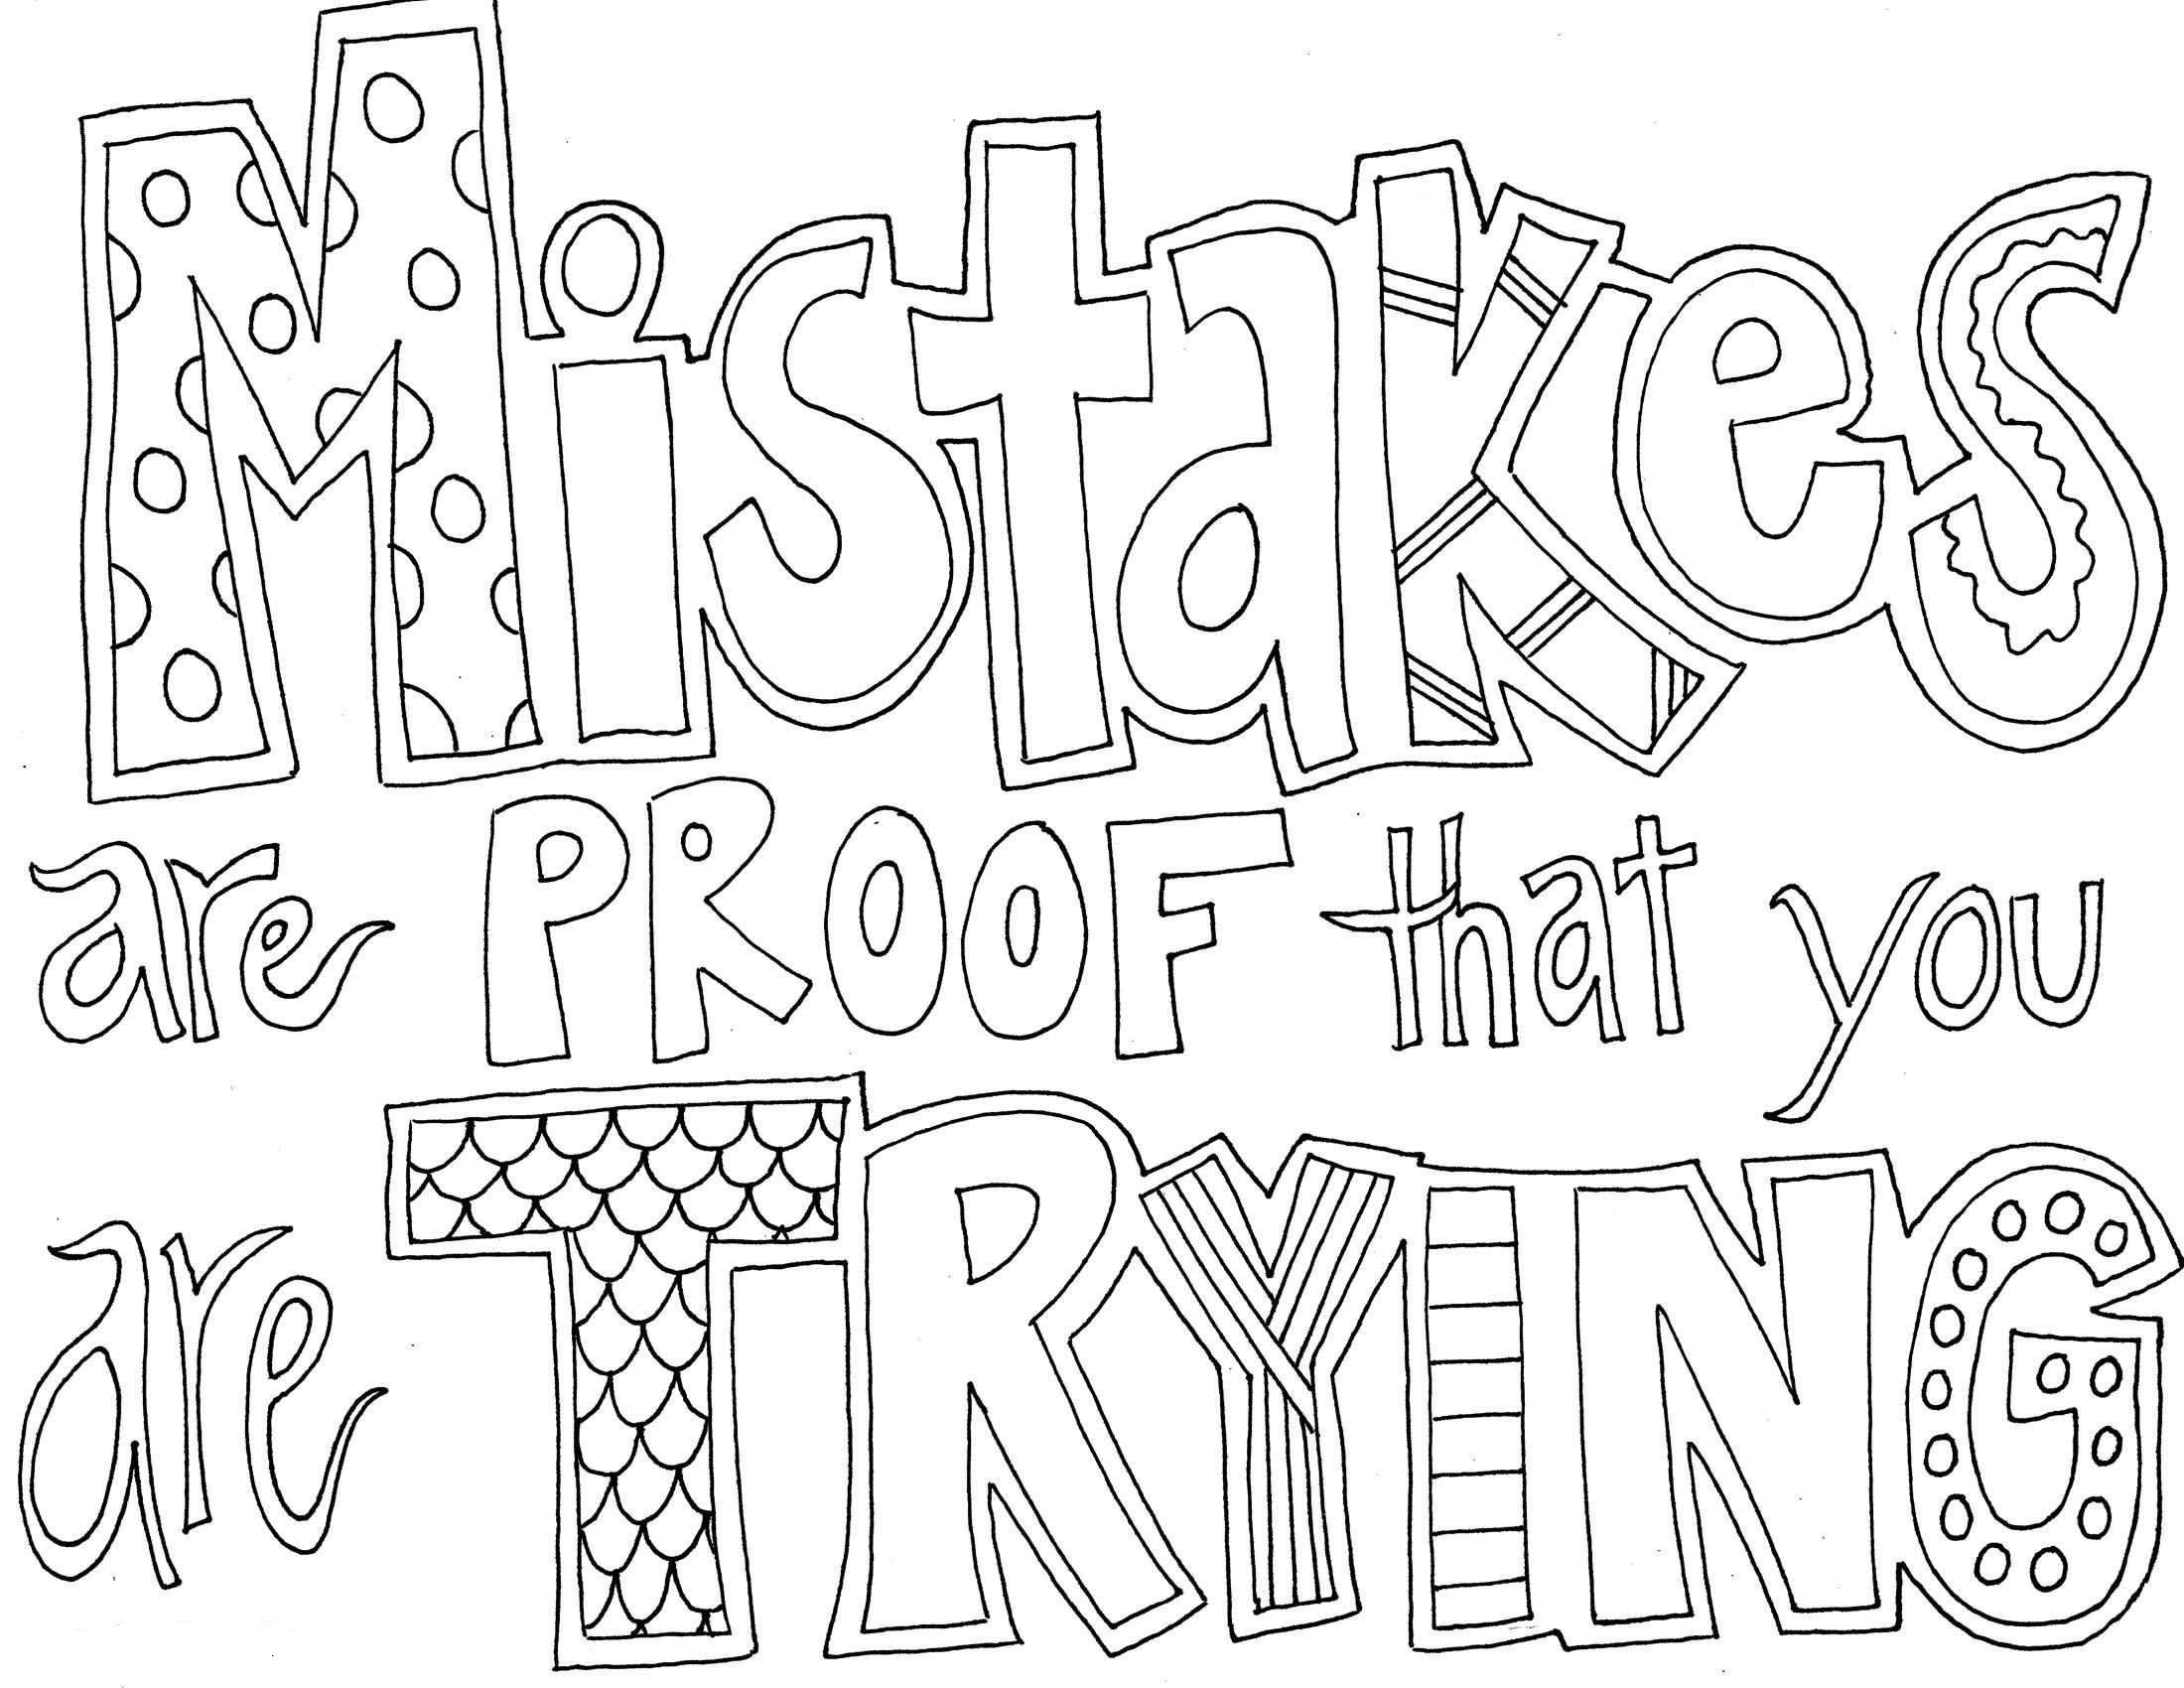 Quote And Sayings Coloring Pages Quote Coloring Pages All Quotes Colouring Pages